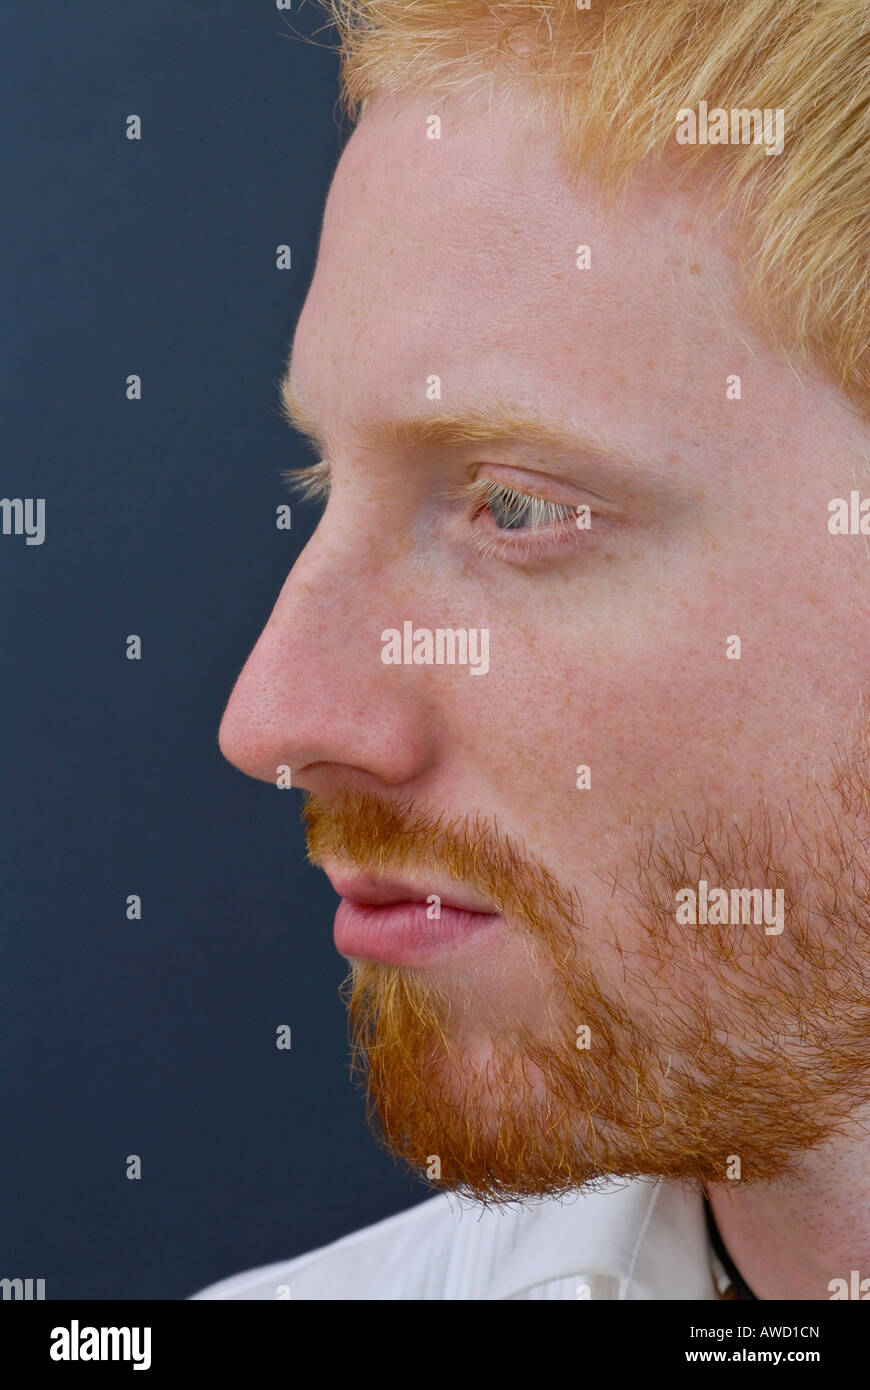 Redheaded young man's face - Stock Image